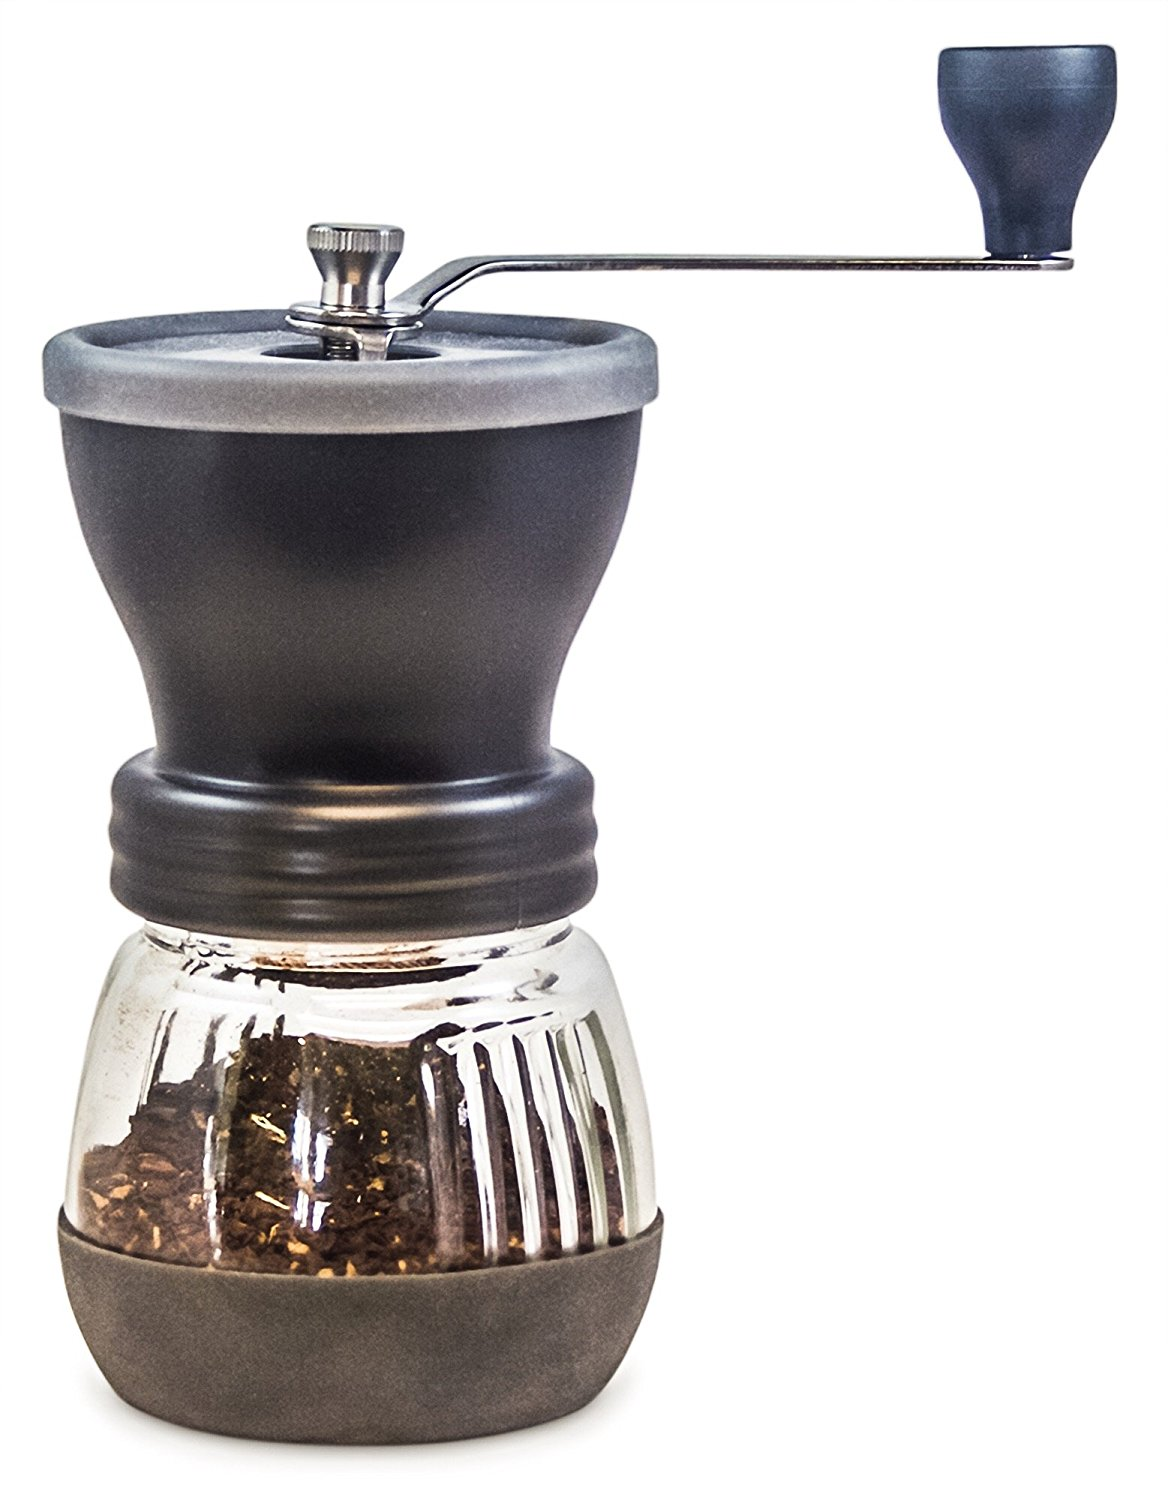 For the coffee lover who likes their beans ground in just the right way, nothing beats the Khaw-Fee Manual Coffee Grinder from Amazon. They can precision grind their beans anywhere, at home, on the trail or even at work. (Image: Amazon.com)<p></p>